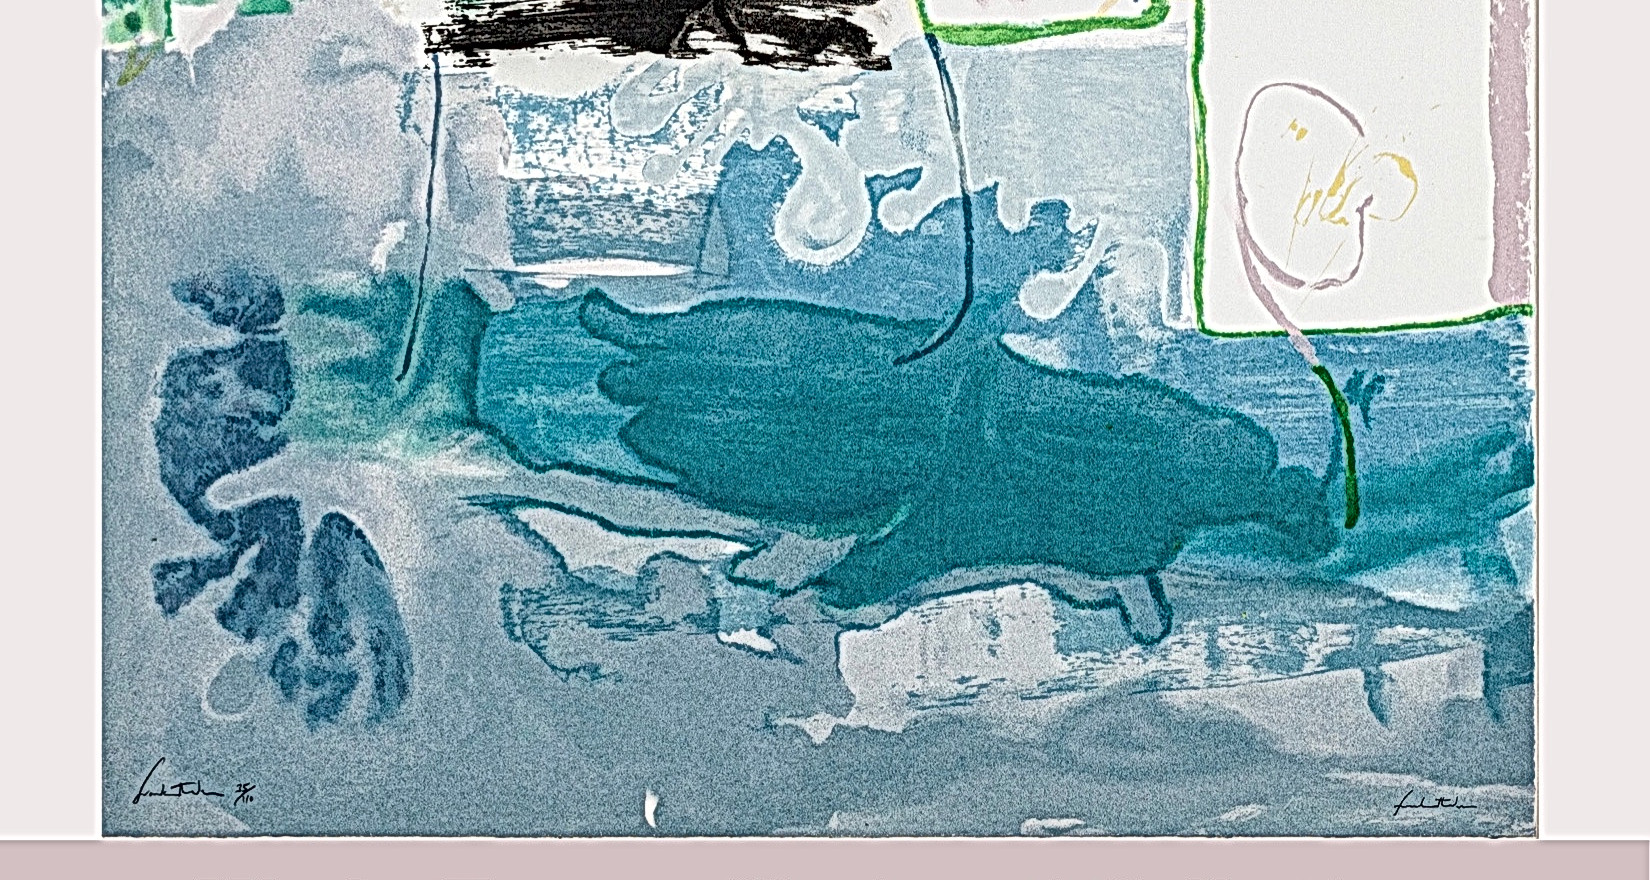 Works From a Cincinnati Collection: Helen Frankenthaler and Her Contemporaries